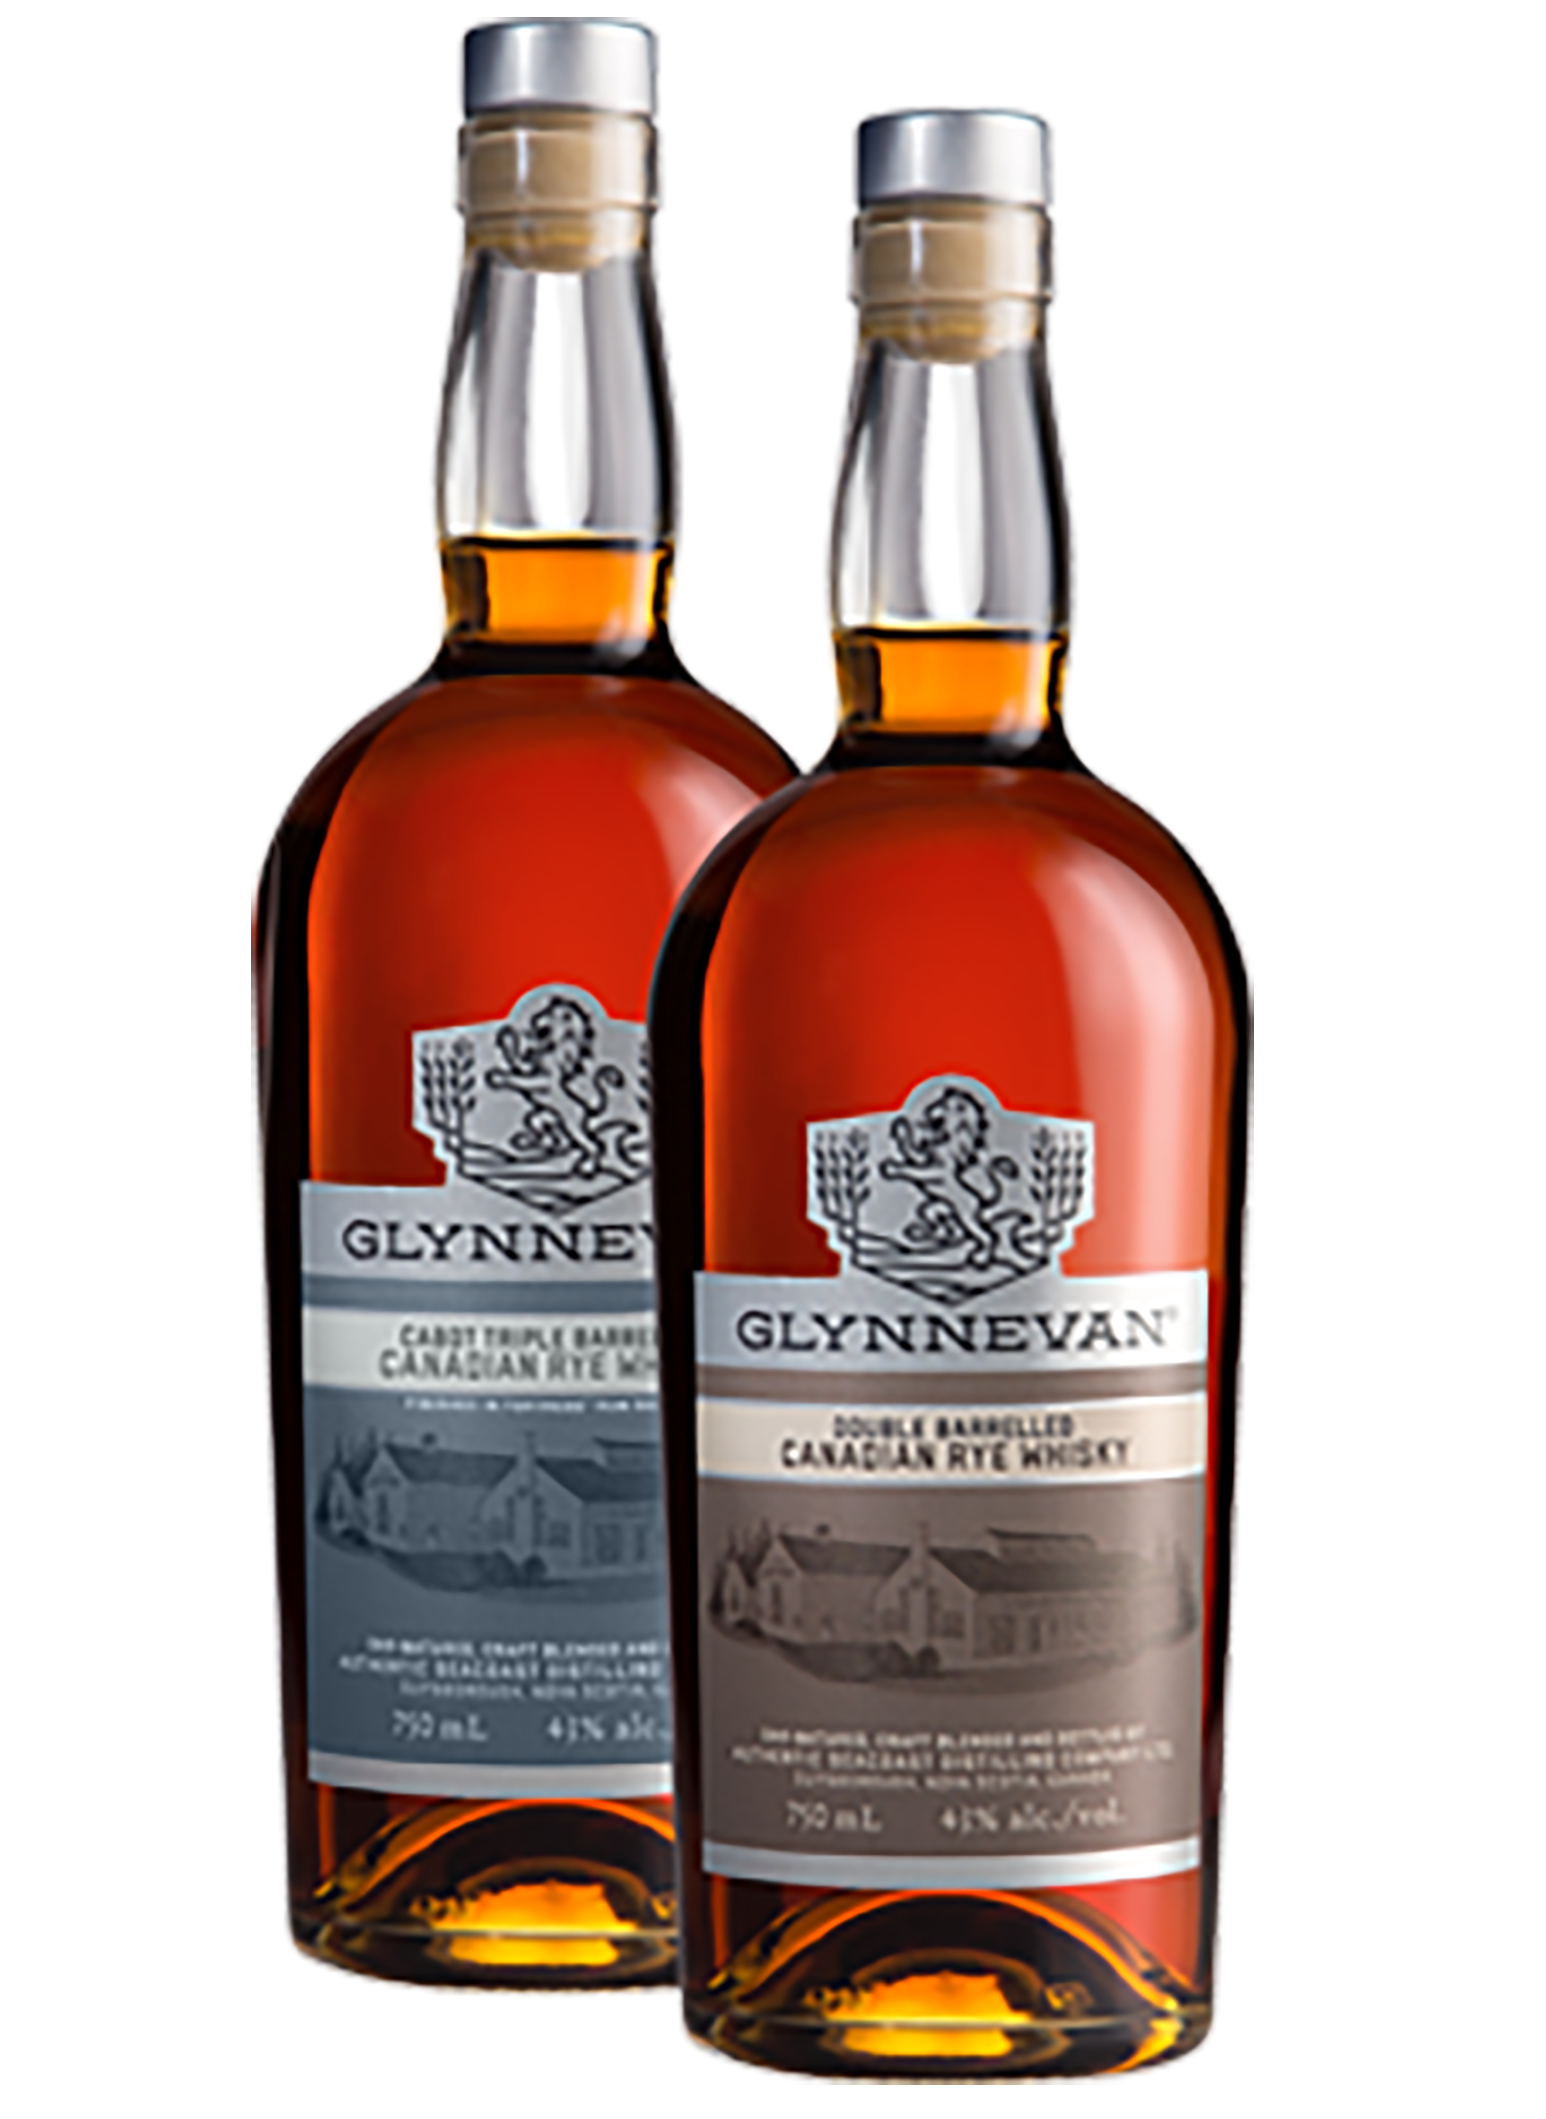 Glynnevan Whiskey Bottle